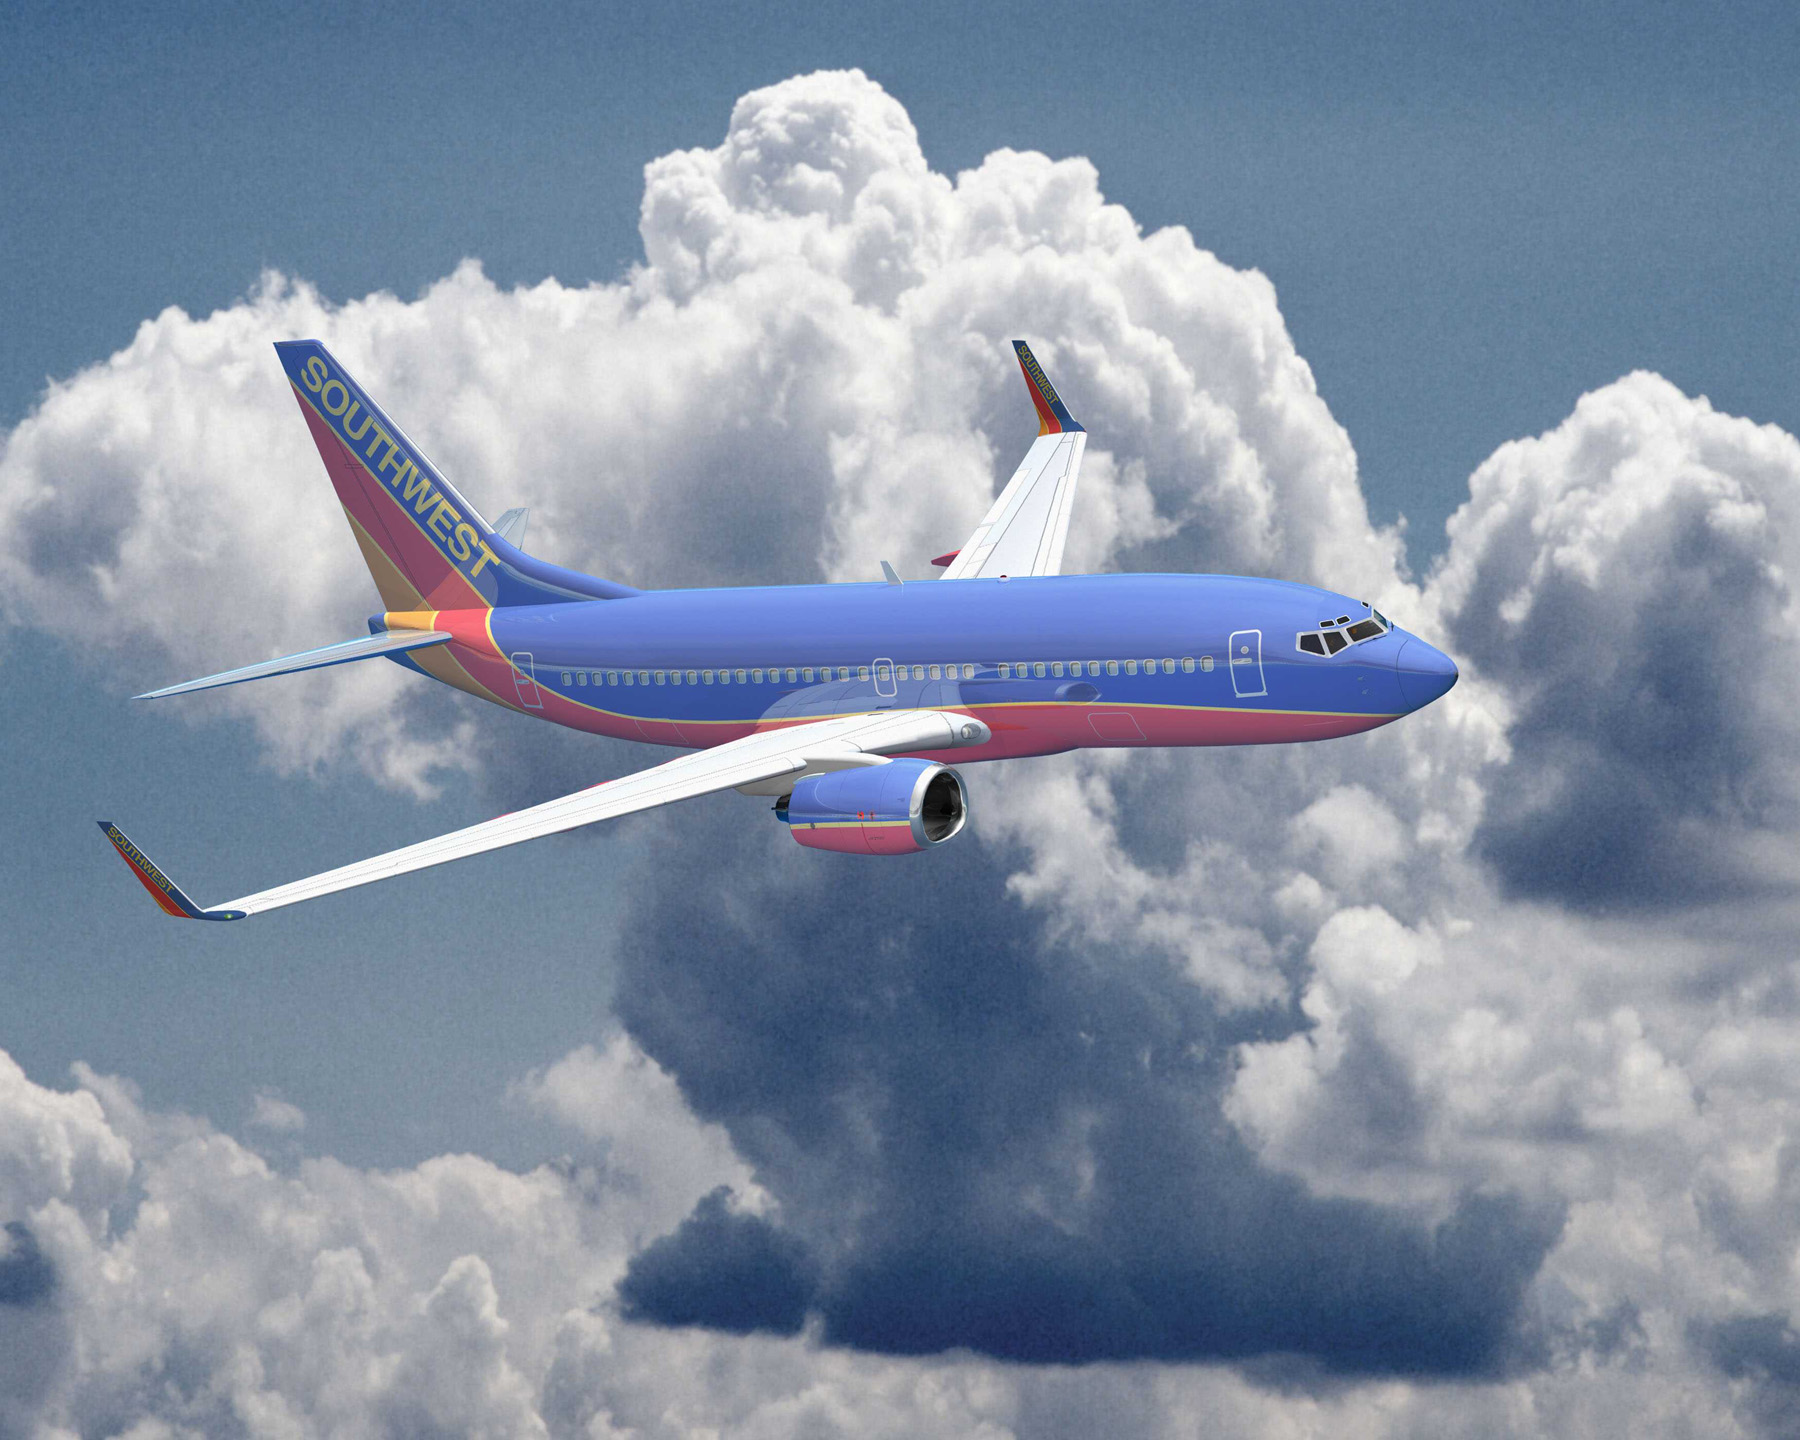 newest aircraft on air essay Important essays & analysis  experienced successive delays in bringing new aircraft into the fleet this reduction in capacity is expected to continue in the .